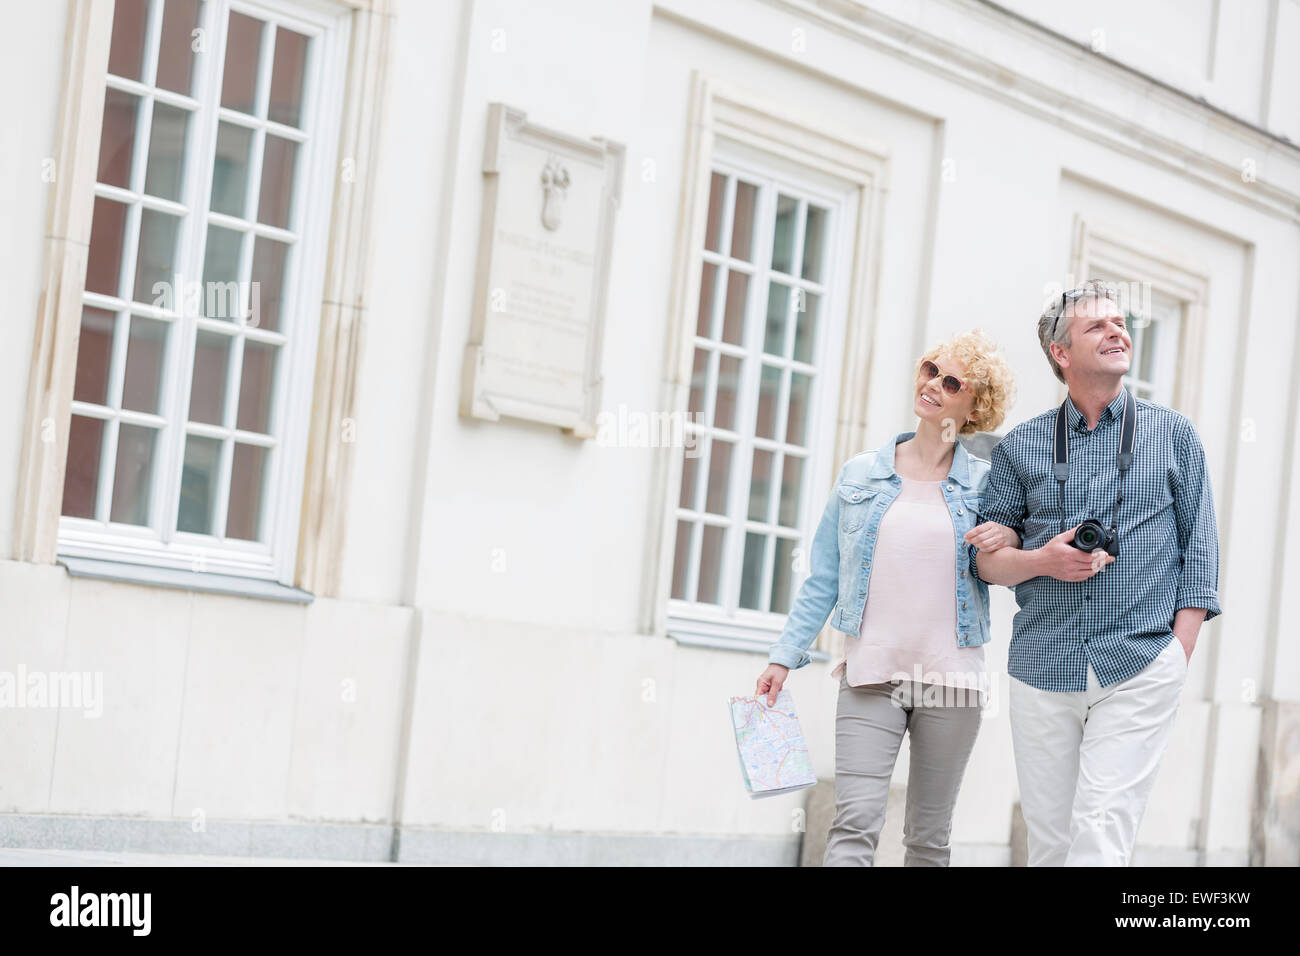 Happy middle-aged tourist couple walking arm in arm by building - Stock Image